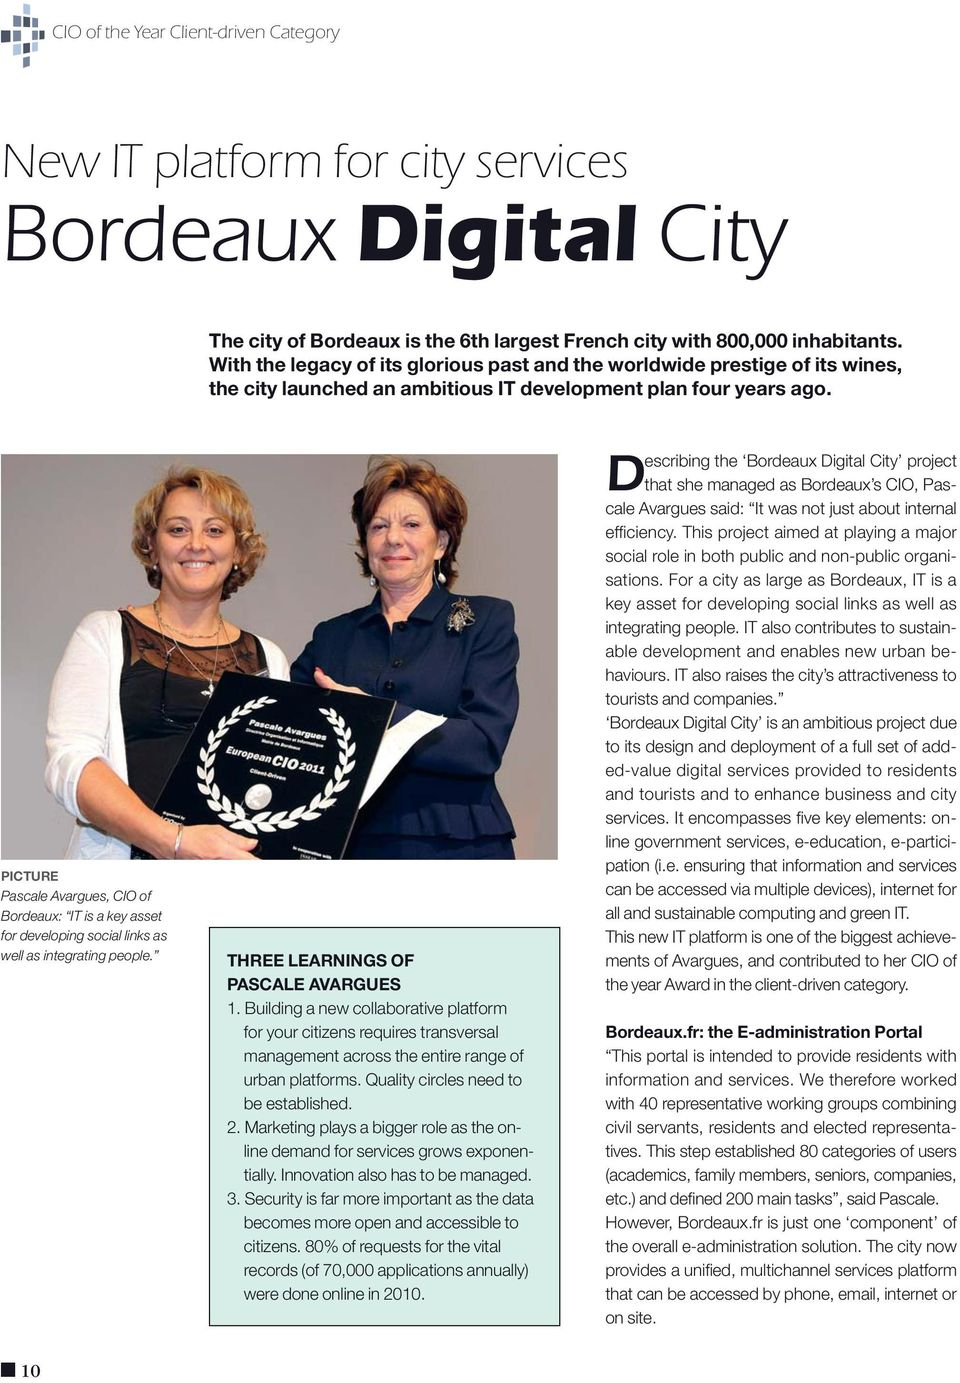 PICTURE Pascale Avargues, CIO of Bordeaux: IT is a key asset for developing social links as well as integrating people. THREE LEARNINGS OF PASCALE AVARGUES 1.